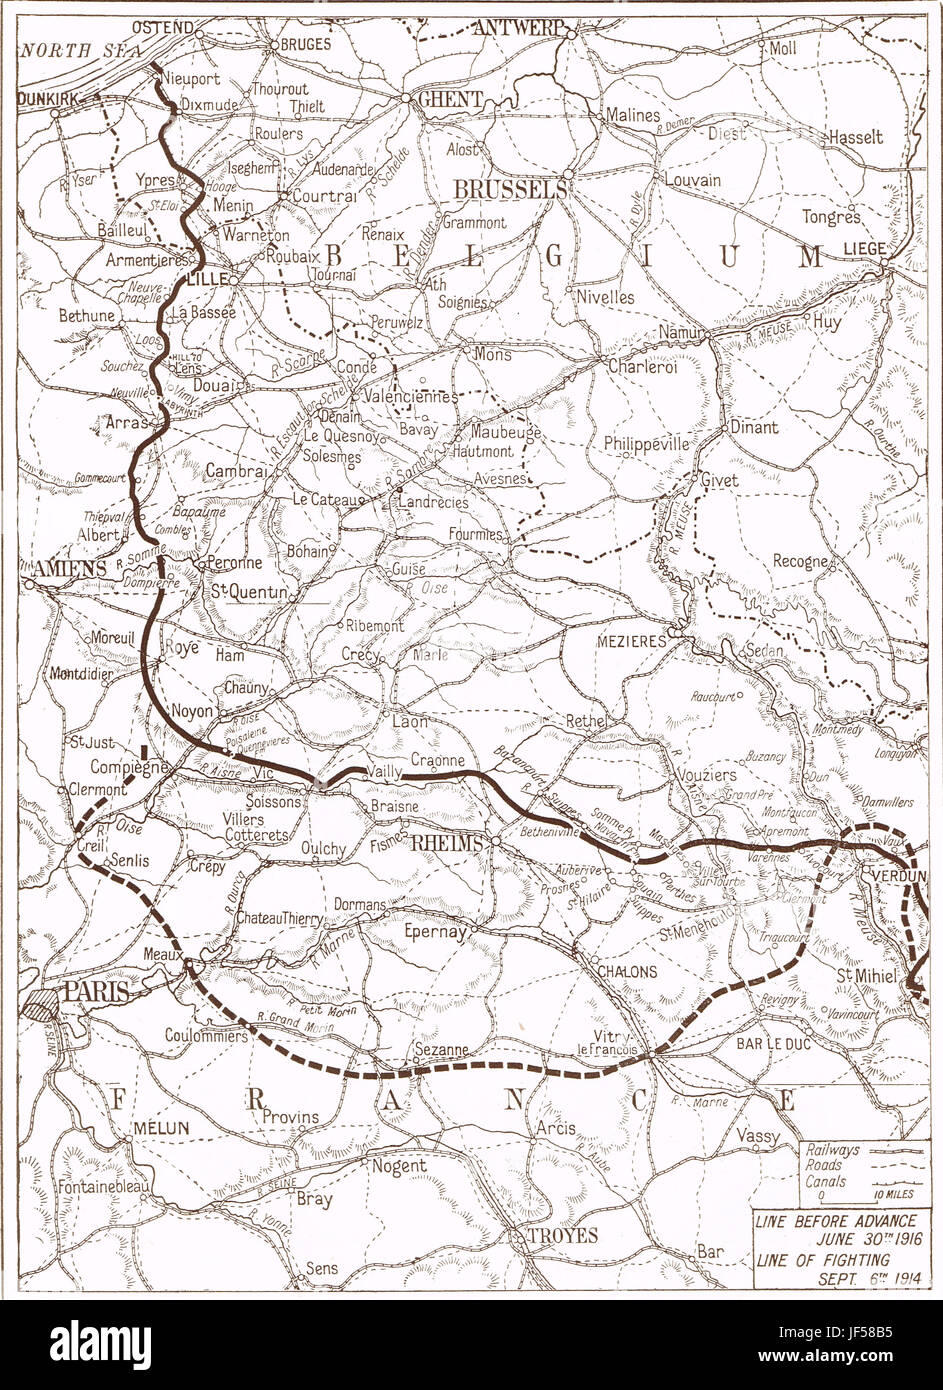 Western Front map, Somme offensive, 1916 - Stock Image